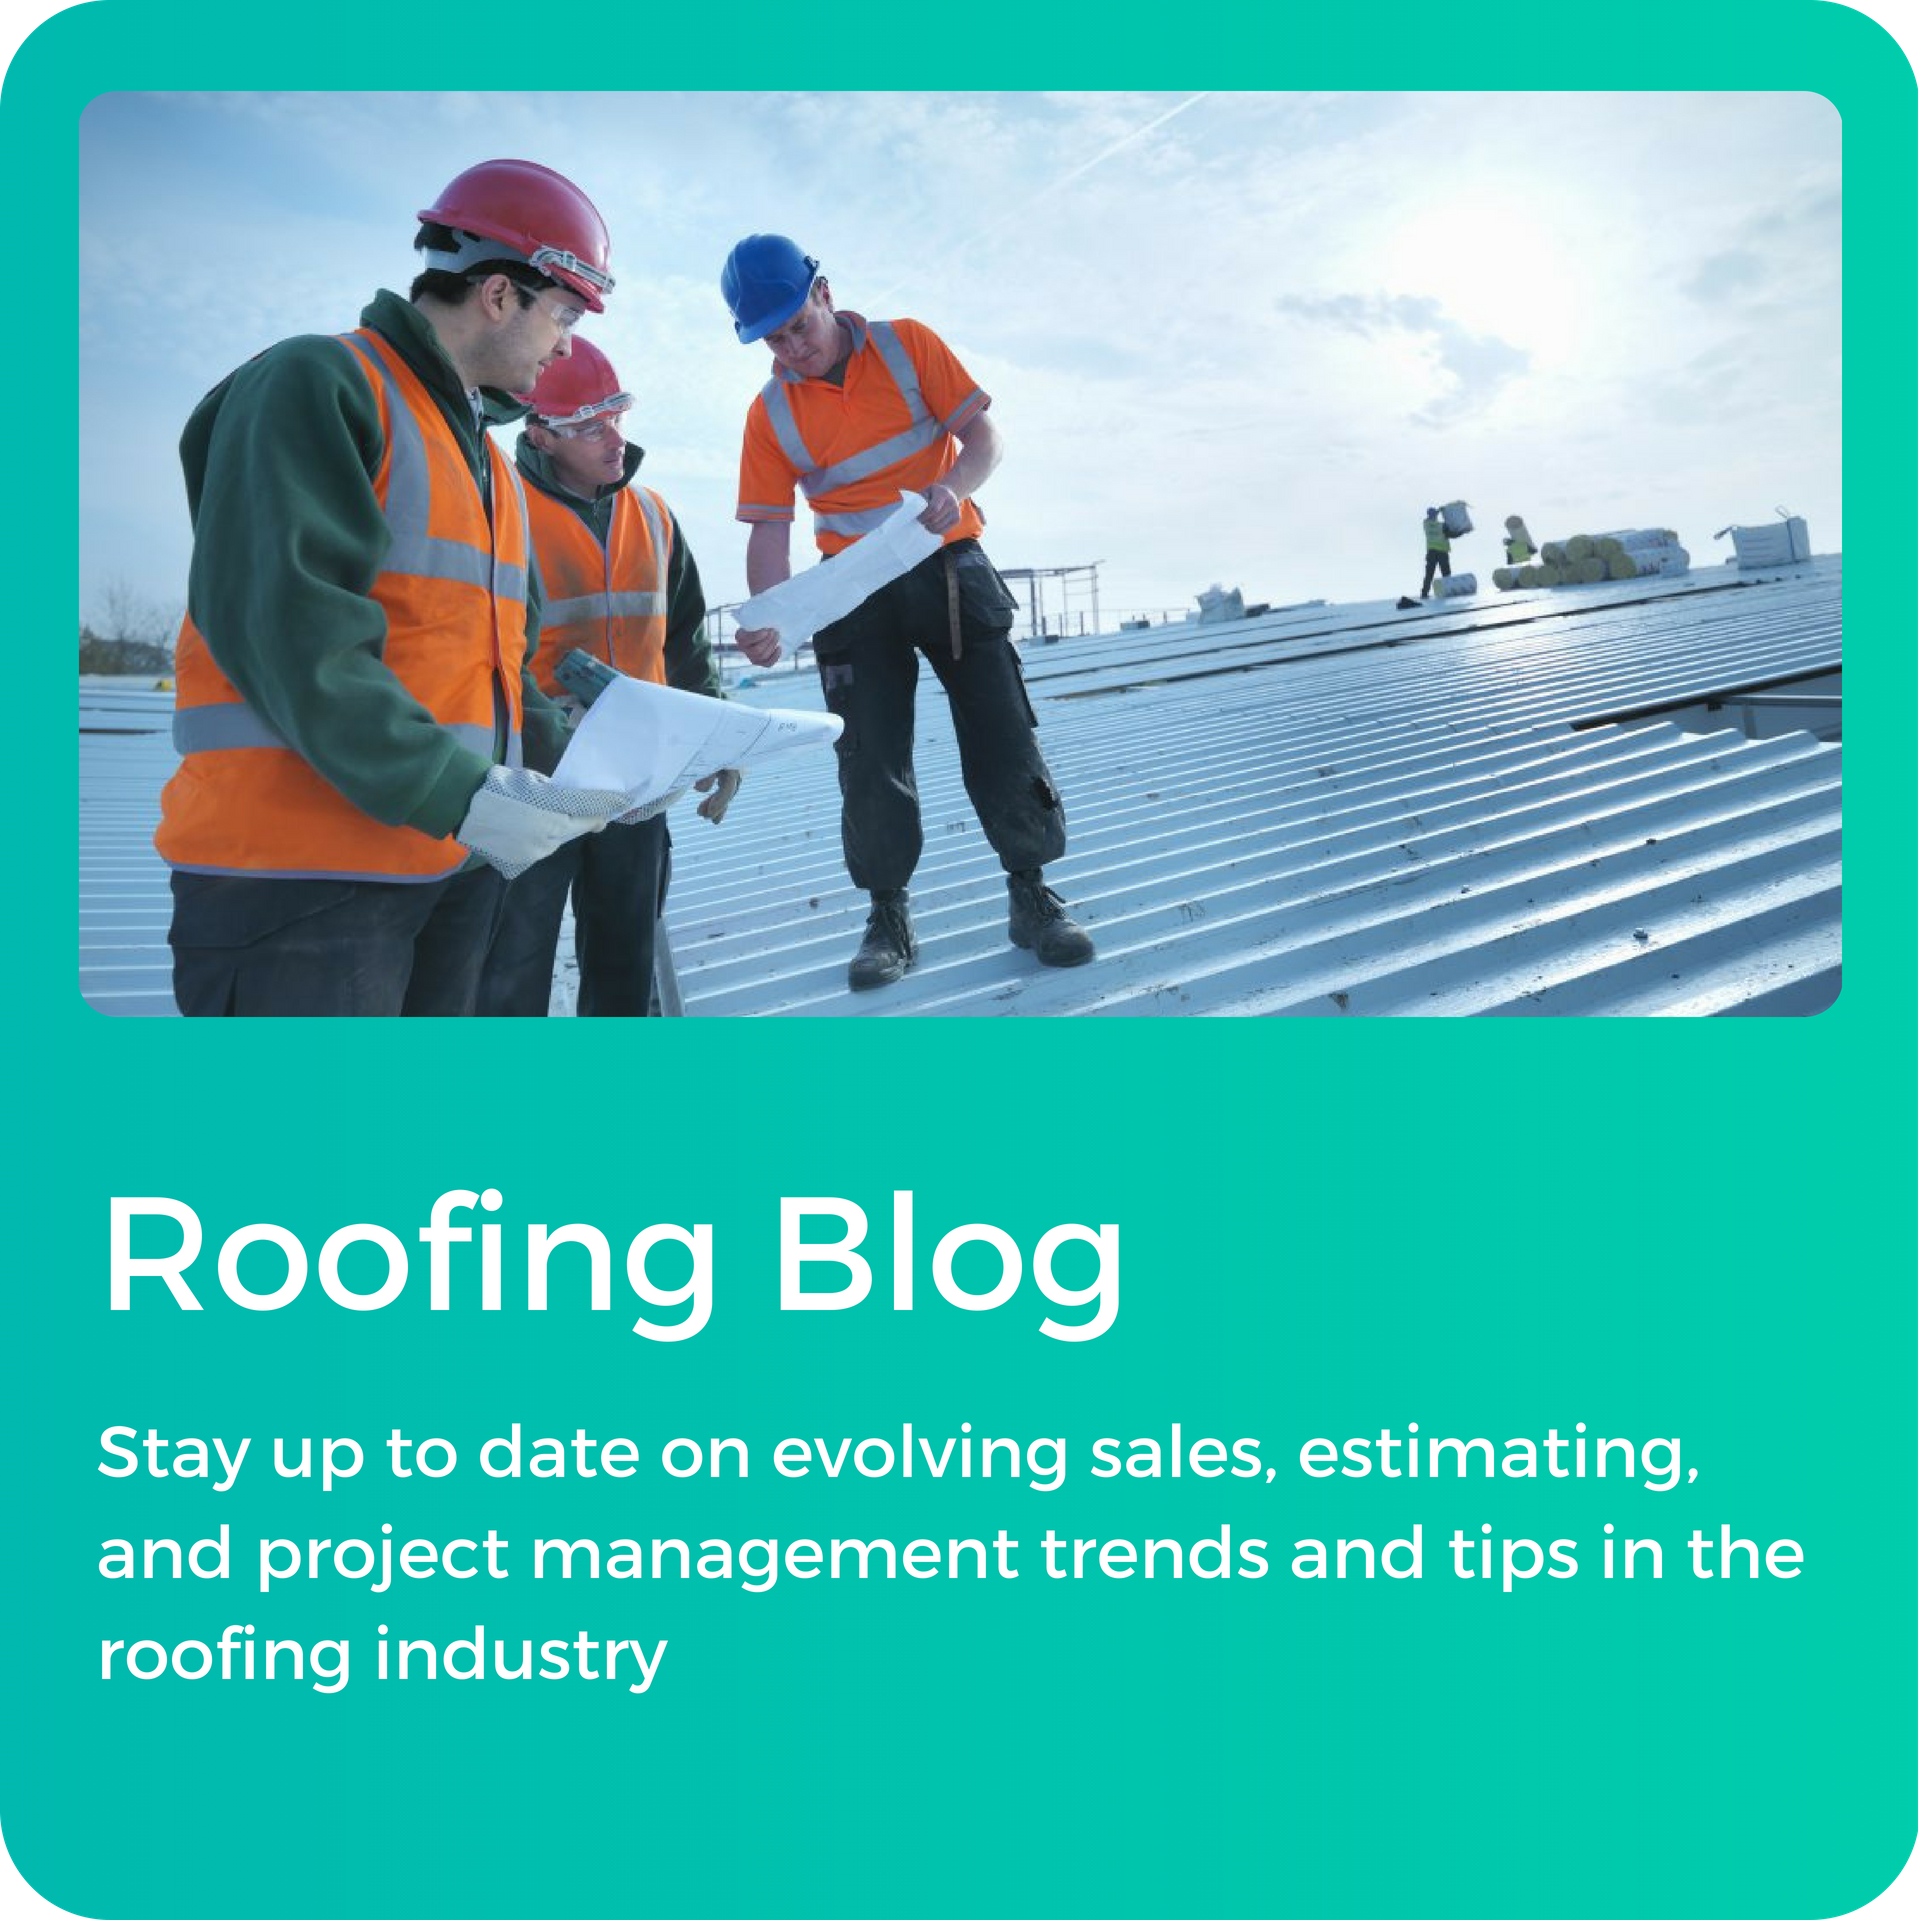 Roofing blog